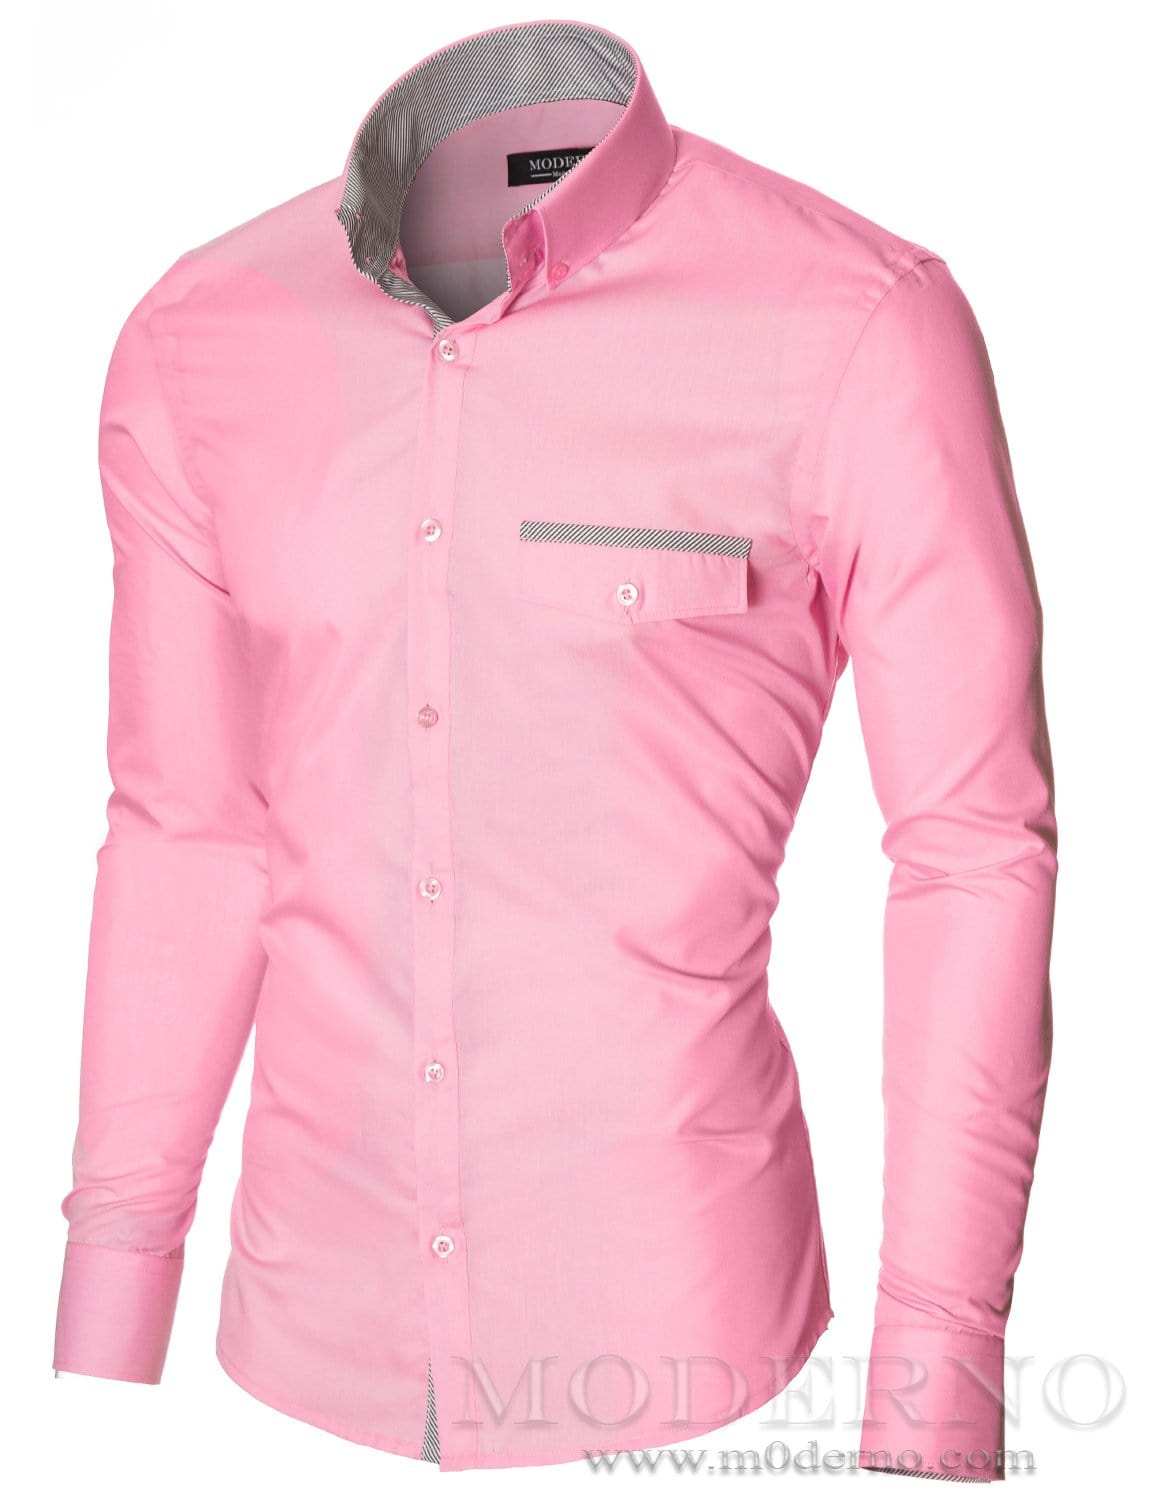 Mens Casual Button Down Pink Shirt With Fake Pocket By Moderno